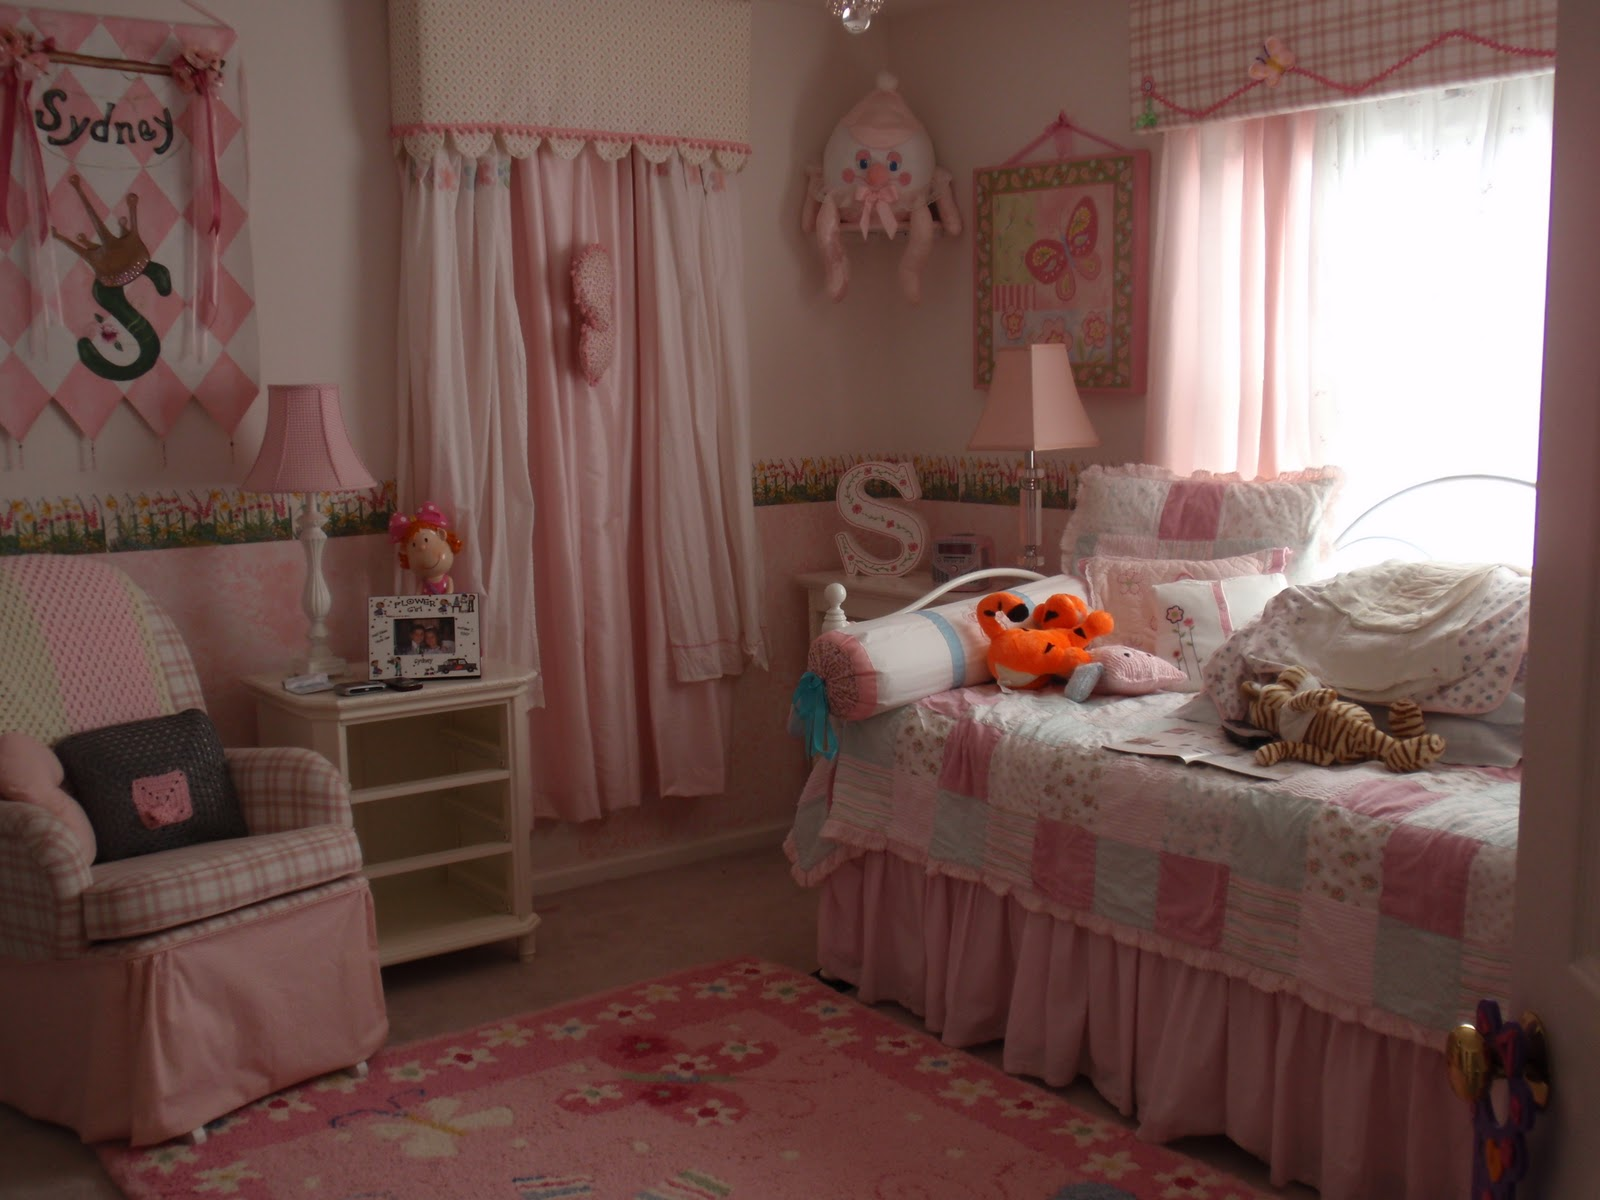 marvelous 10 year old bedroom ideas | DIY by Design: Inspirations for a 10 year old girl's room